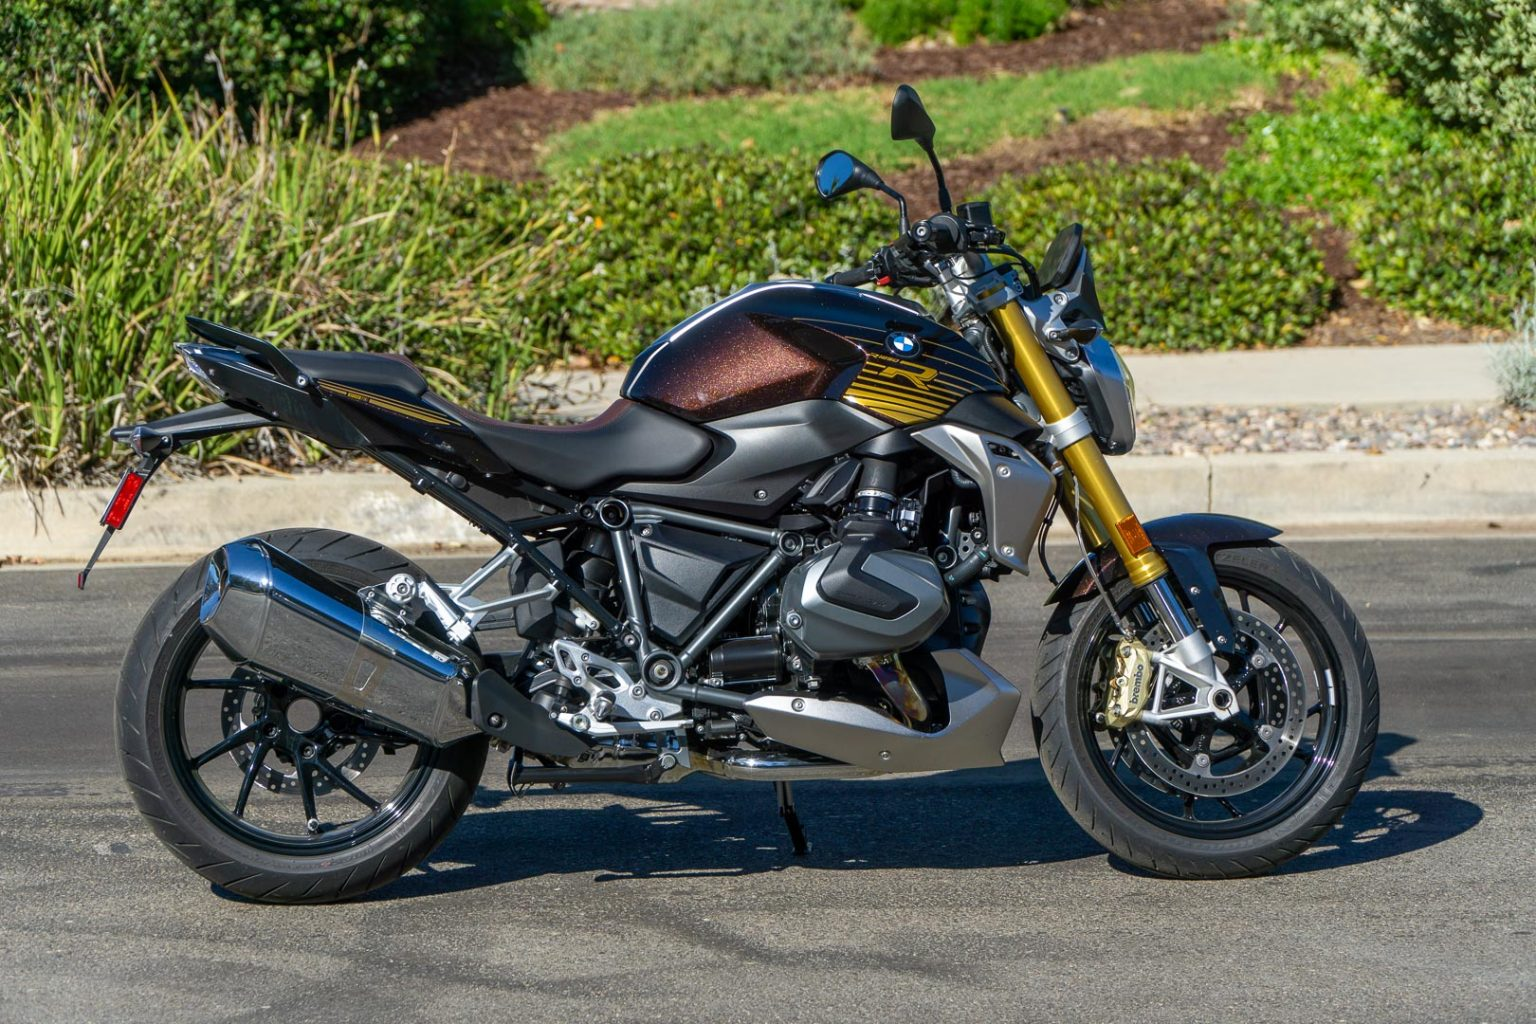 2020 BMW R 1250 R REVIEW WITH SELECT PACKAGE (21 FAST FACTS)